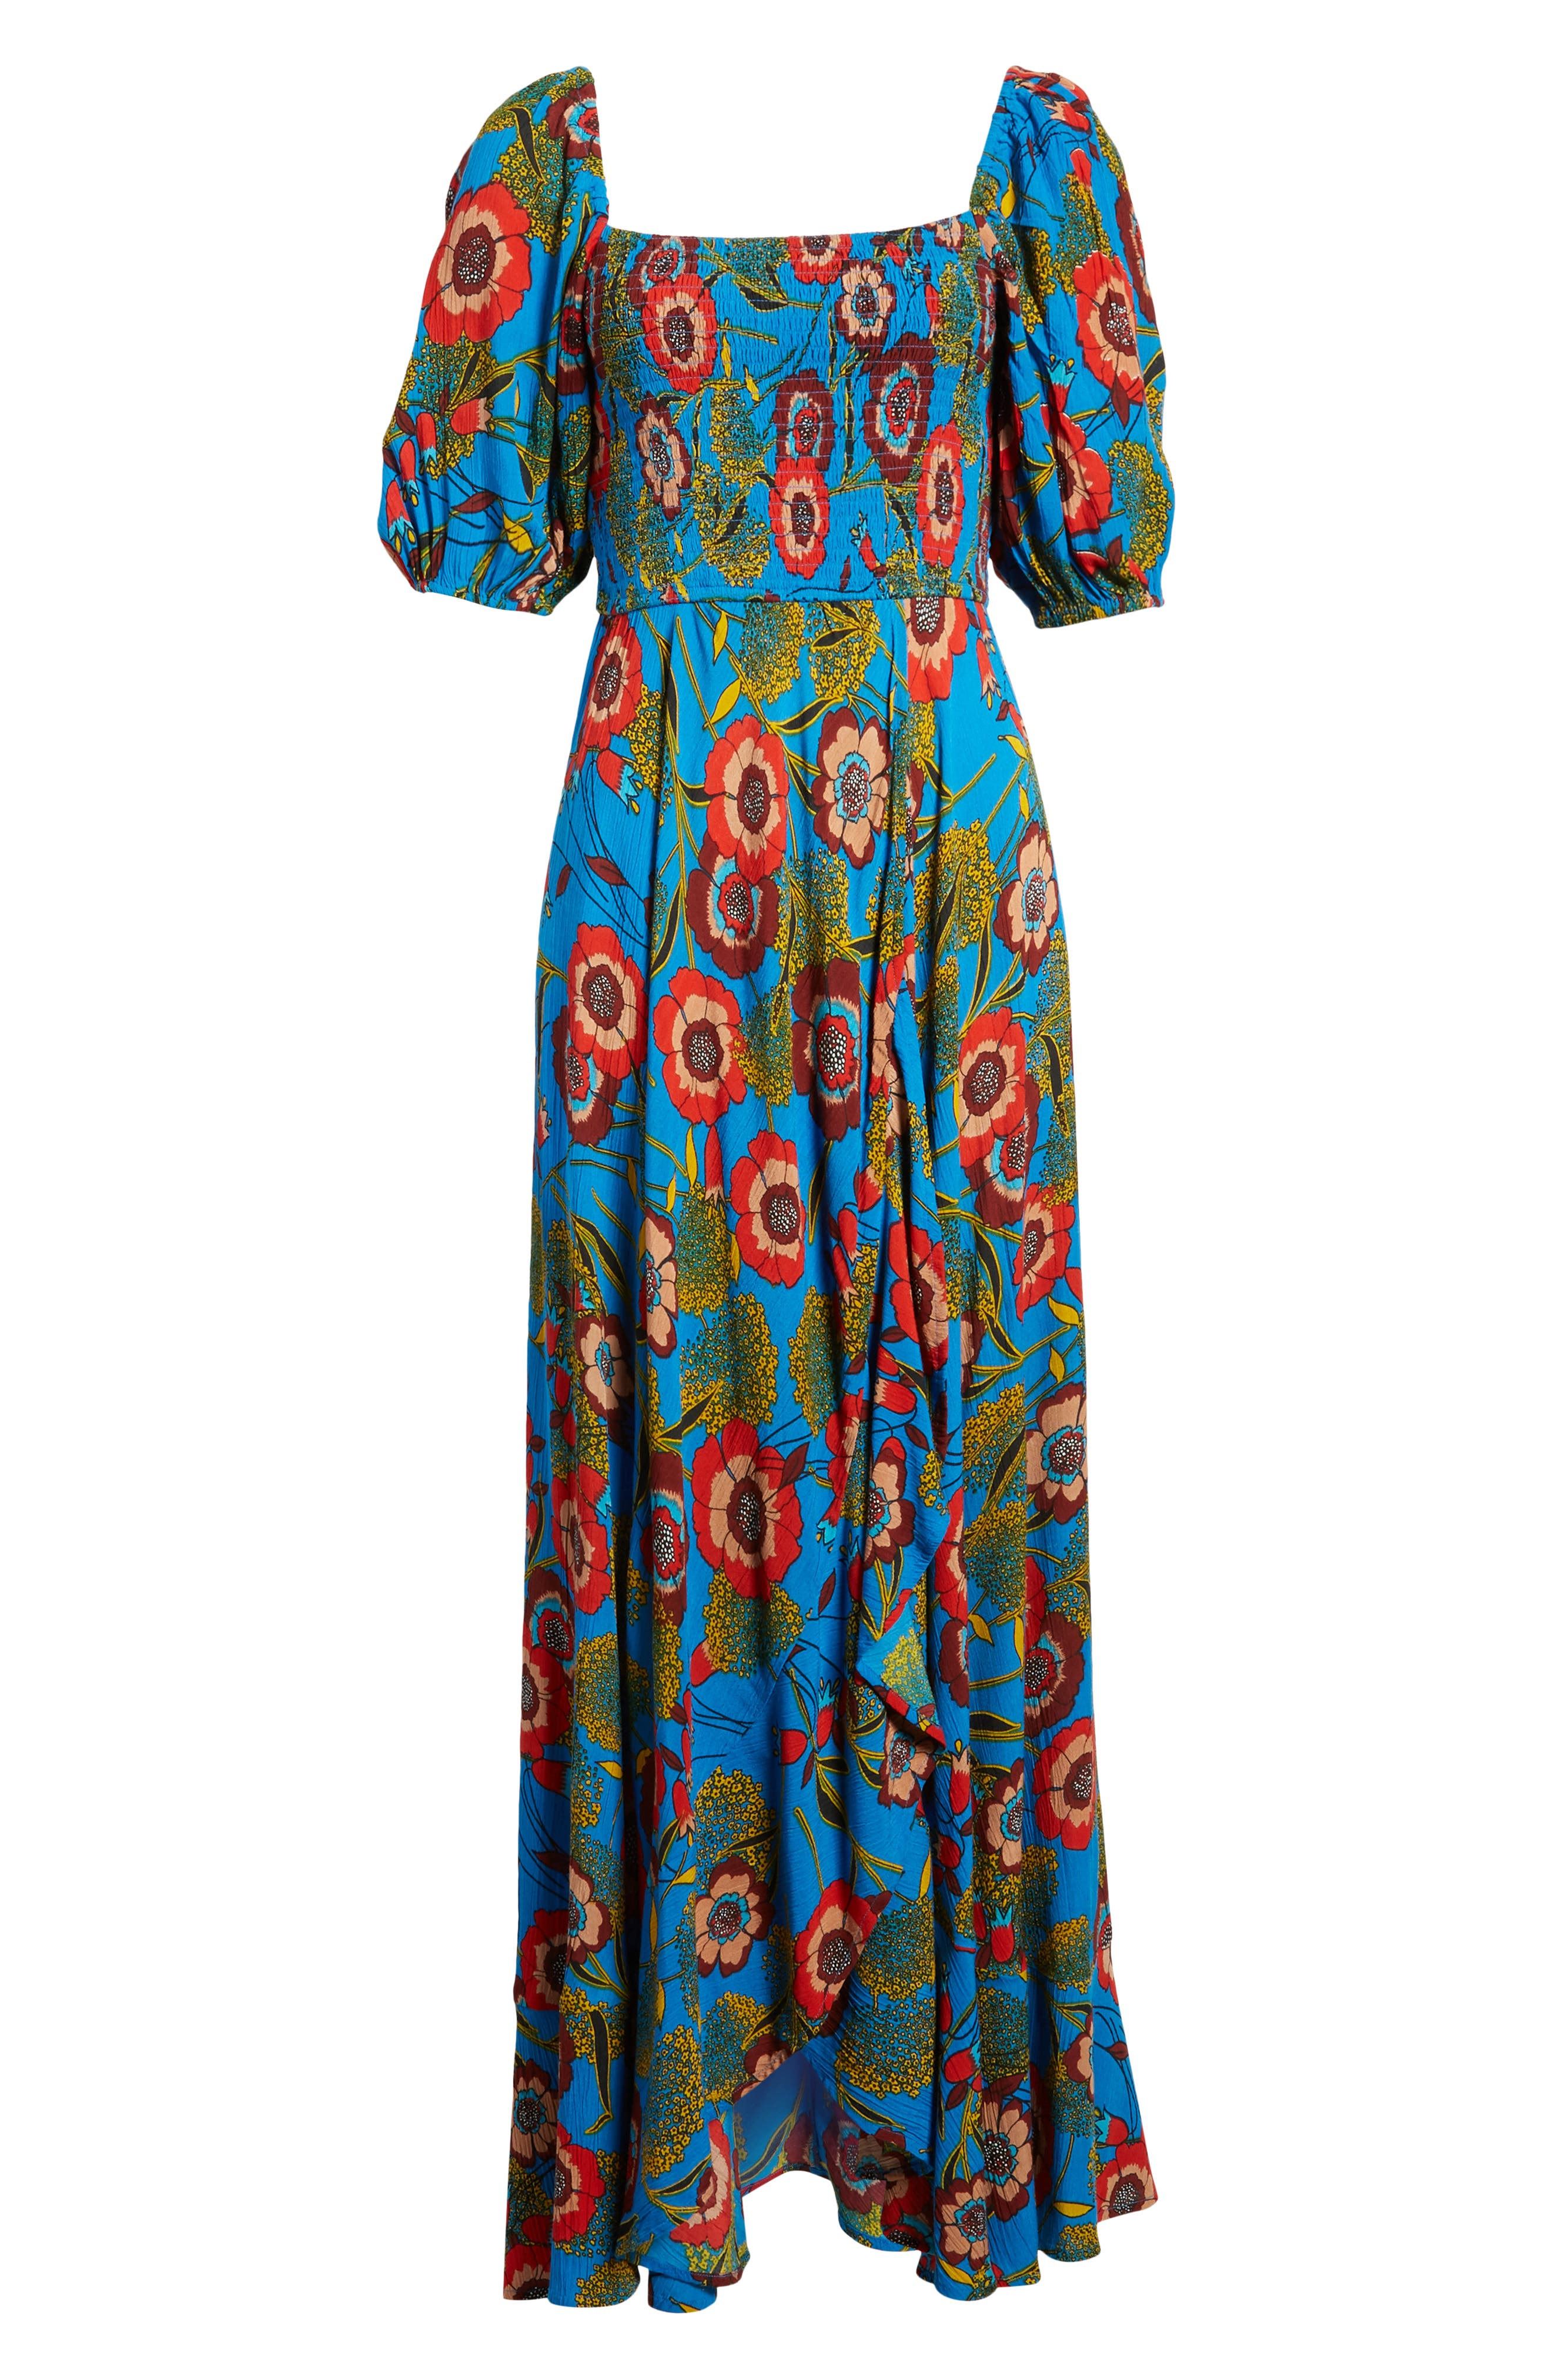 Heirloom Blossom Maxi Dress,                             Alternate thumbnail 7, color,                             ROYAL/ BLUE/ RED